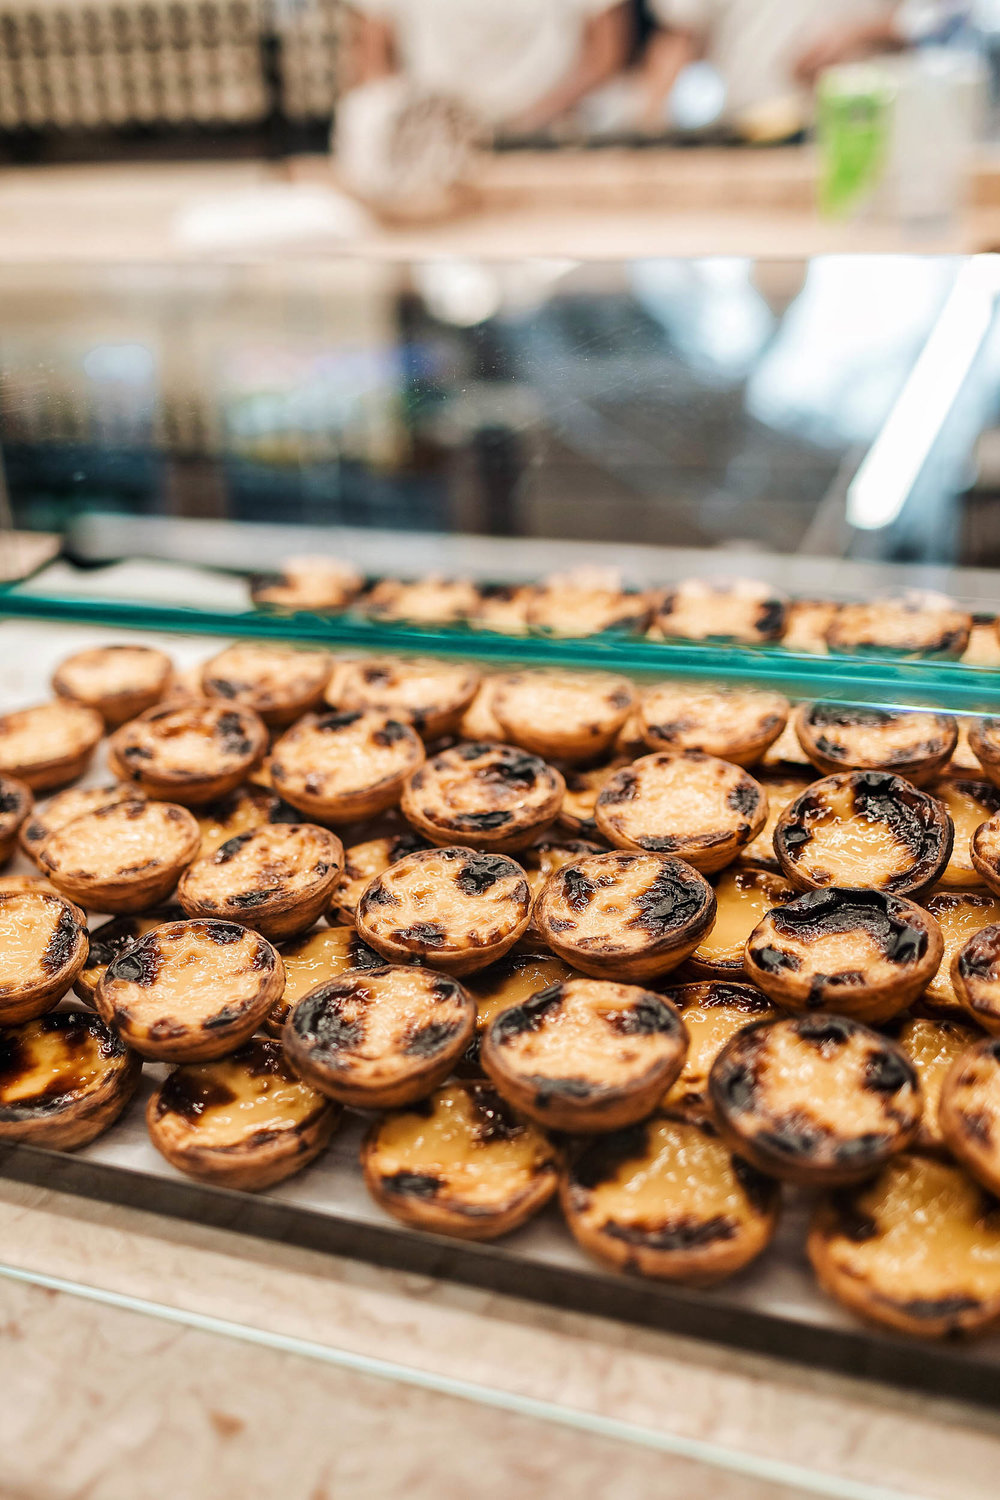 Pastel de nata at Manteigaria, the best place to get them in Lisbon, Portugal!